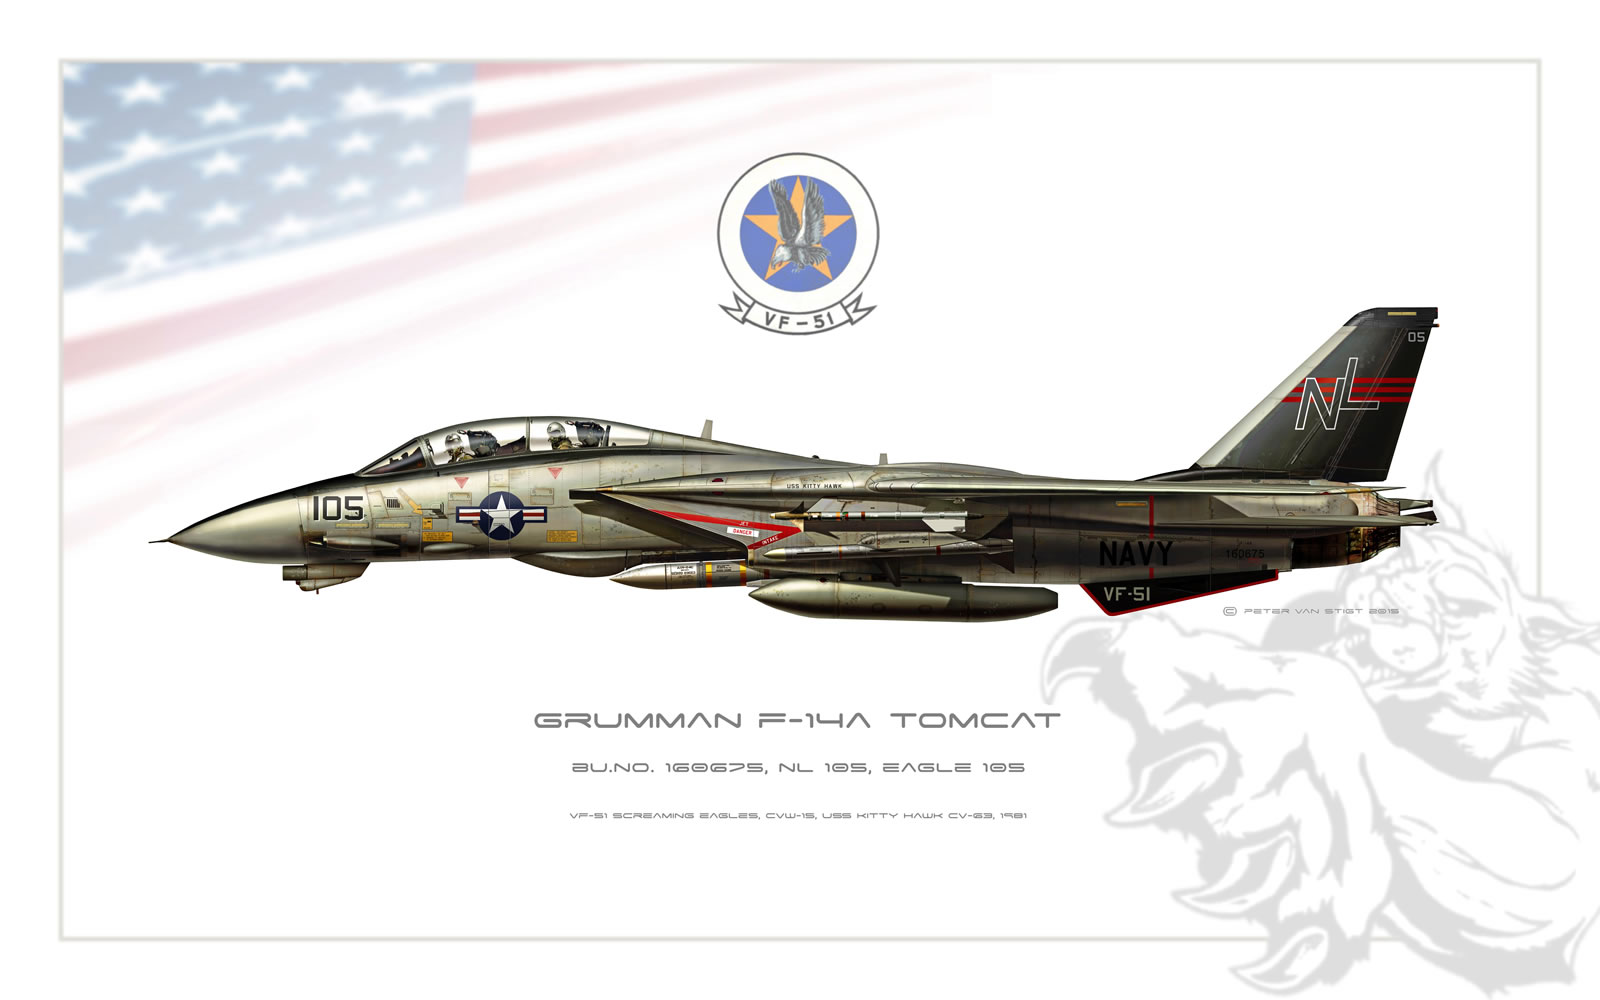 VF-51 Screaming Eagles F-14 Tomcat Profile